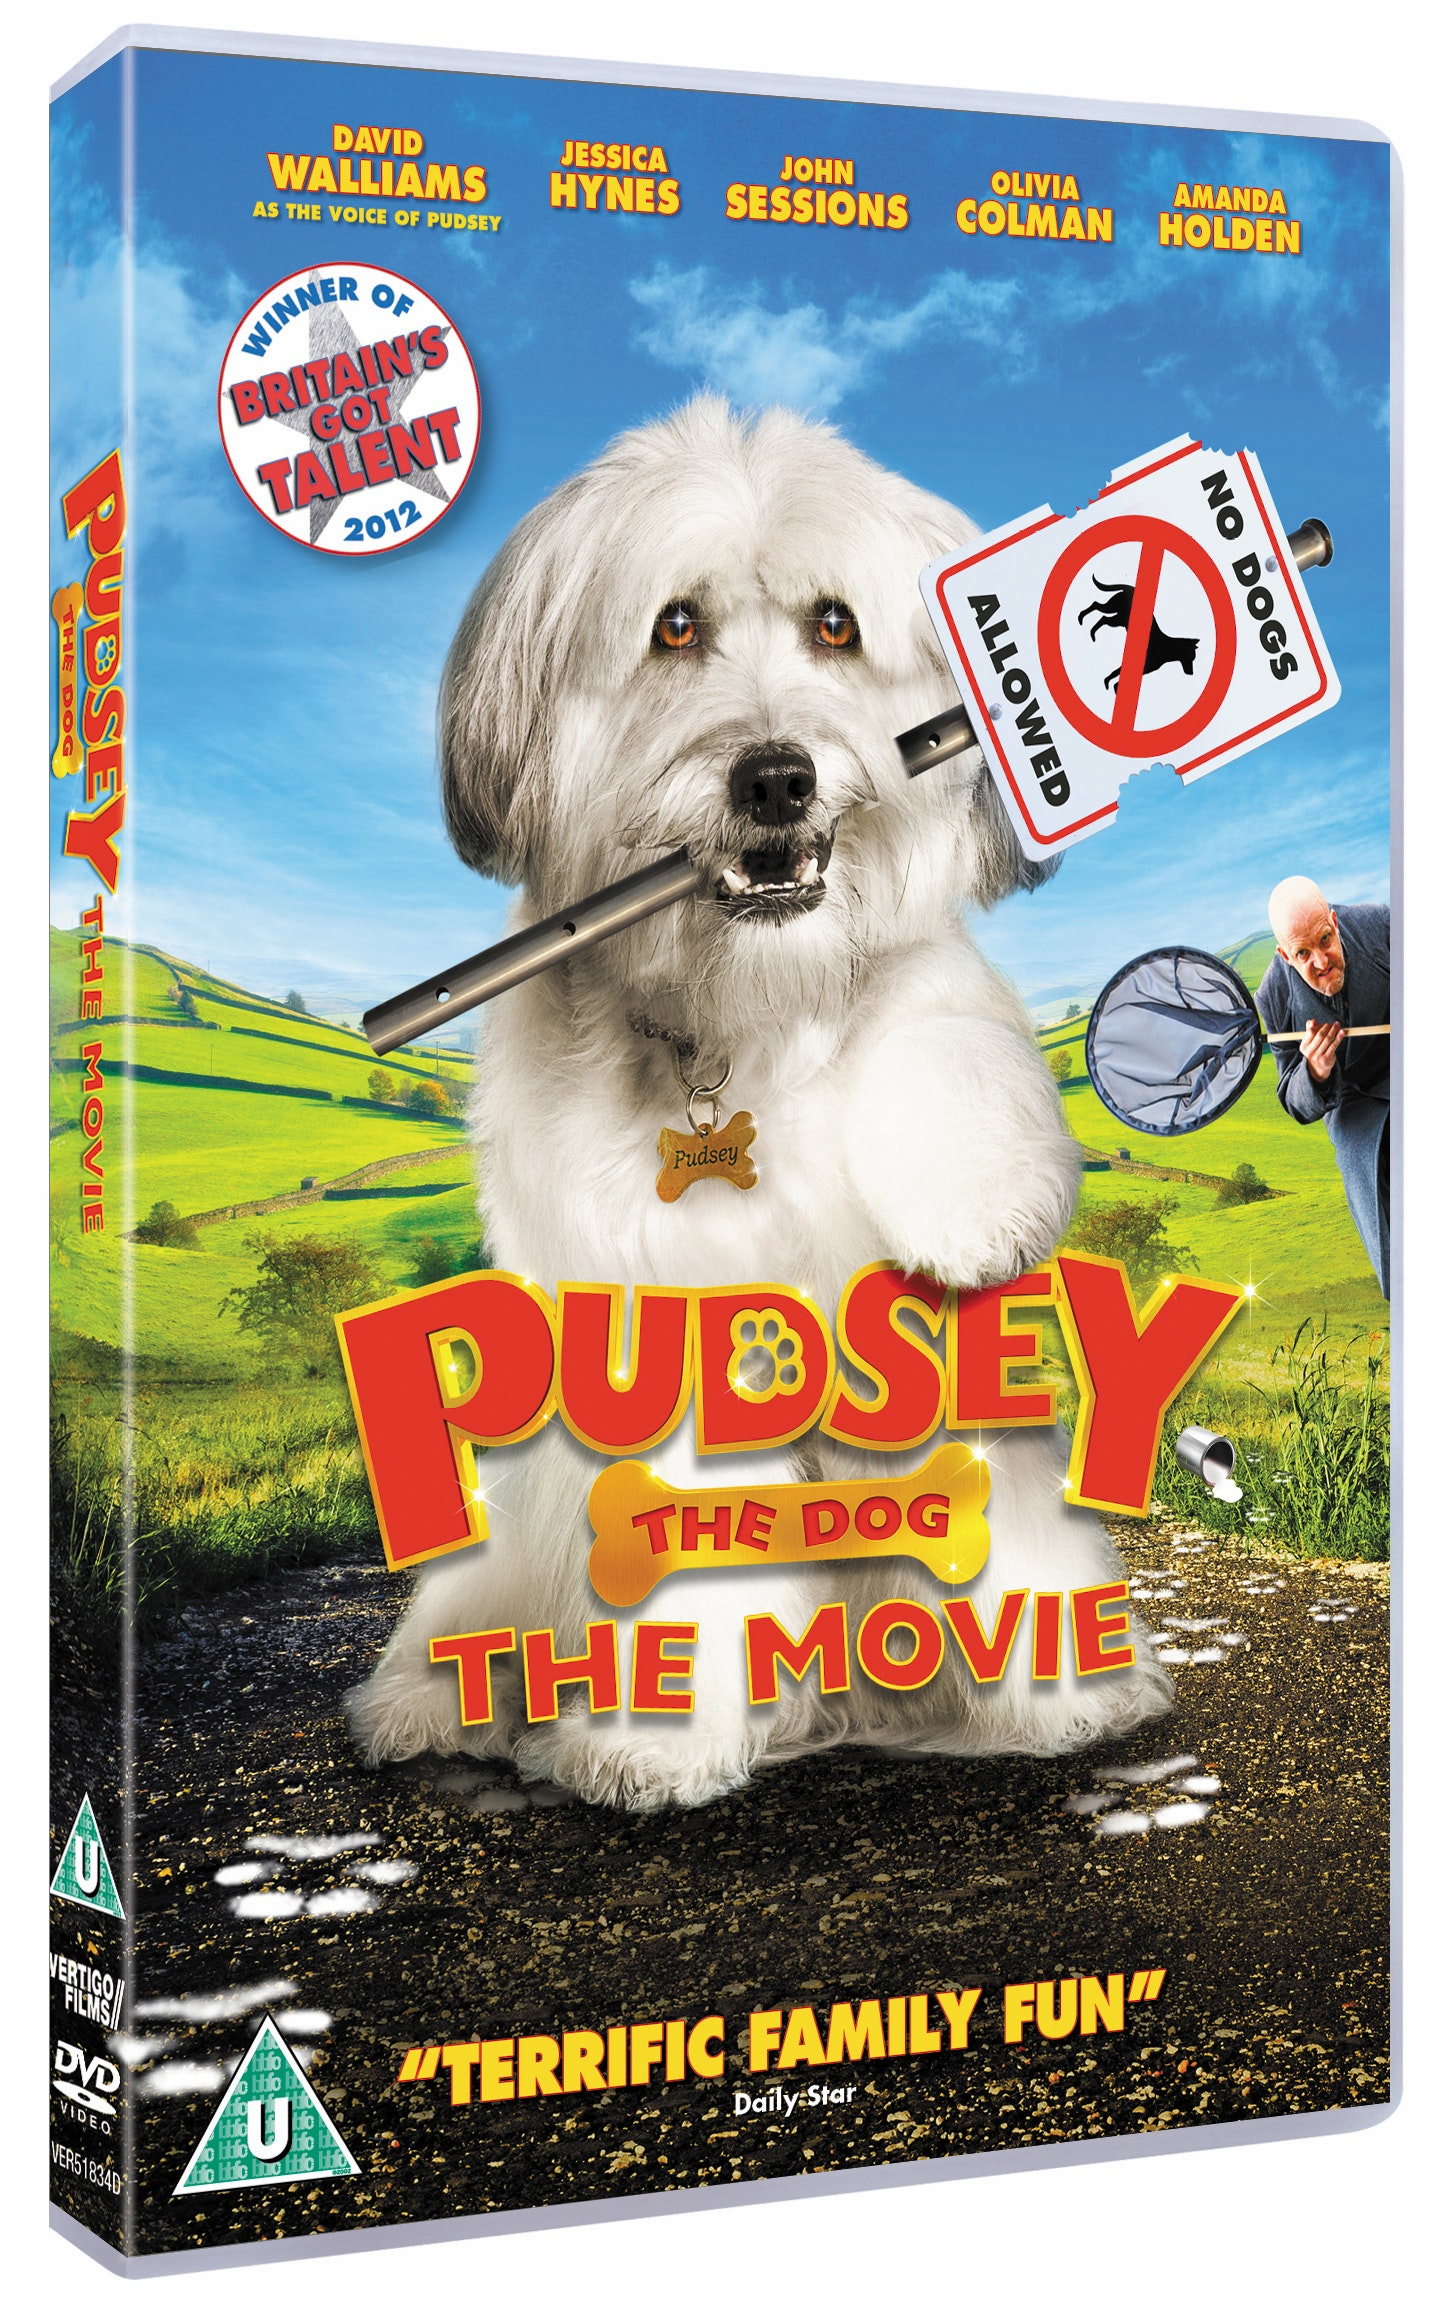 Pudsey the dog sweepstakes